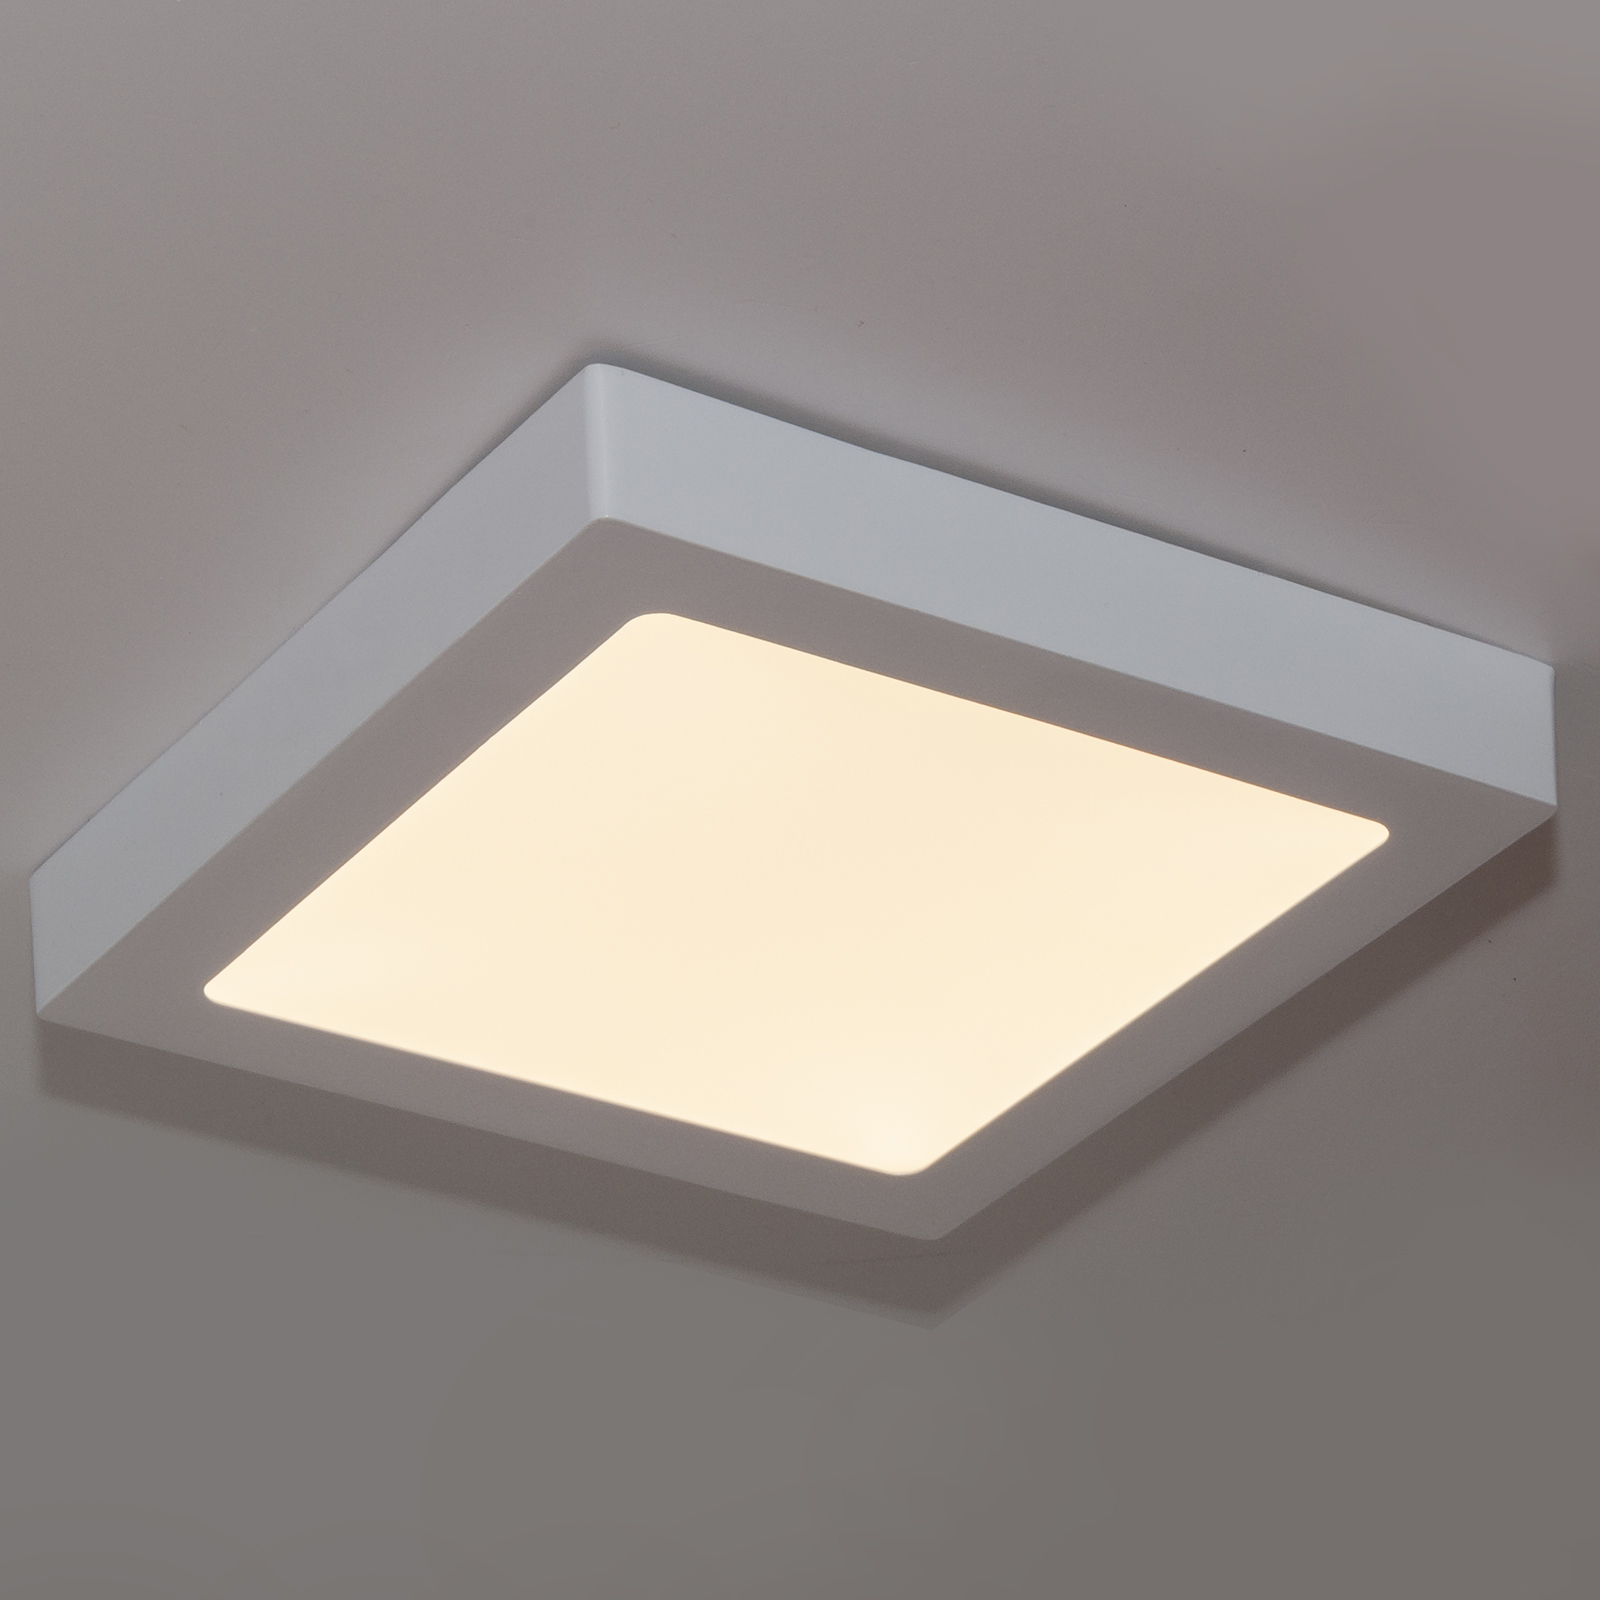 Ceiling light led ceiling lamps from ceiling 90 led 18w yield 200w warm light